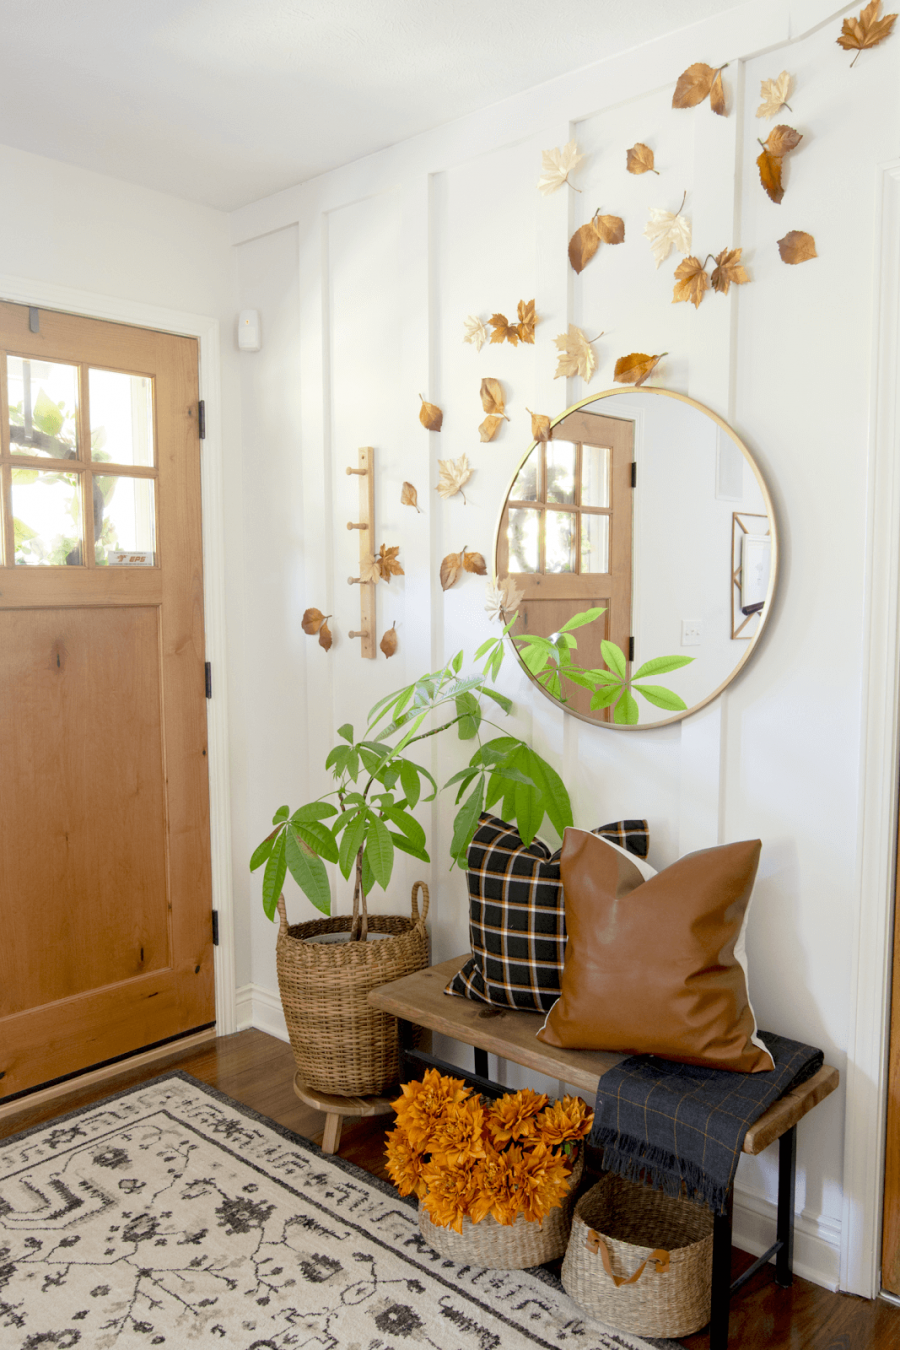 26 Easy Home Decor Tips To Give Your House A Makeover